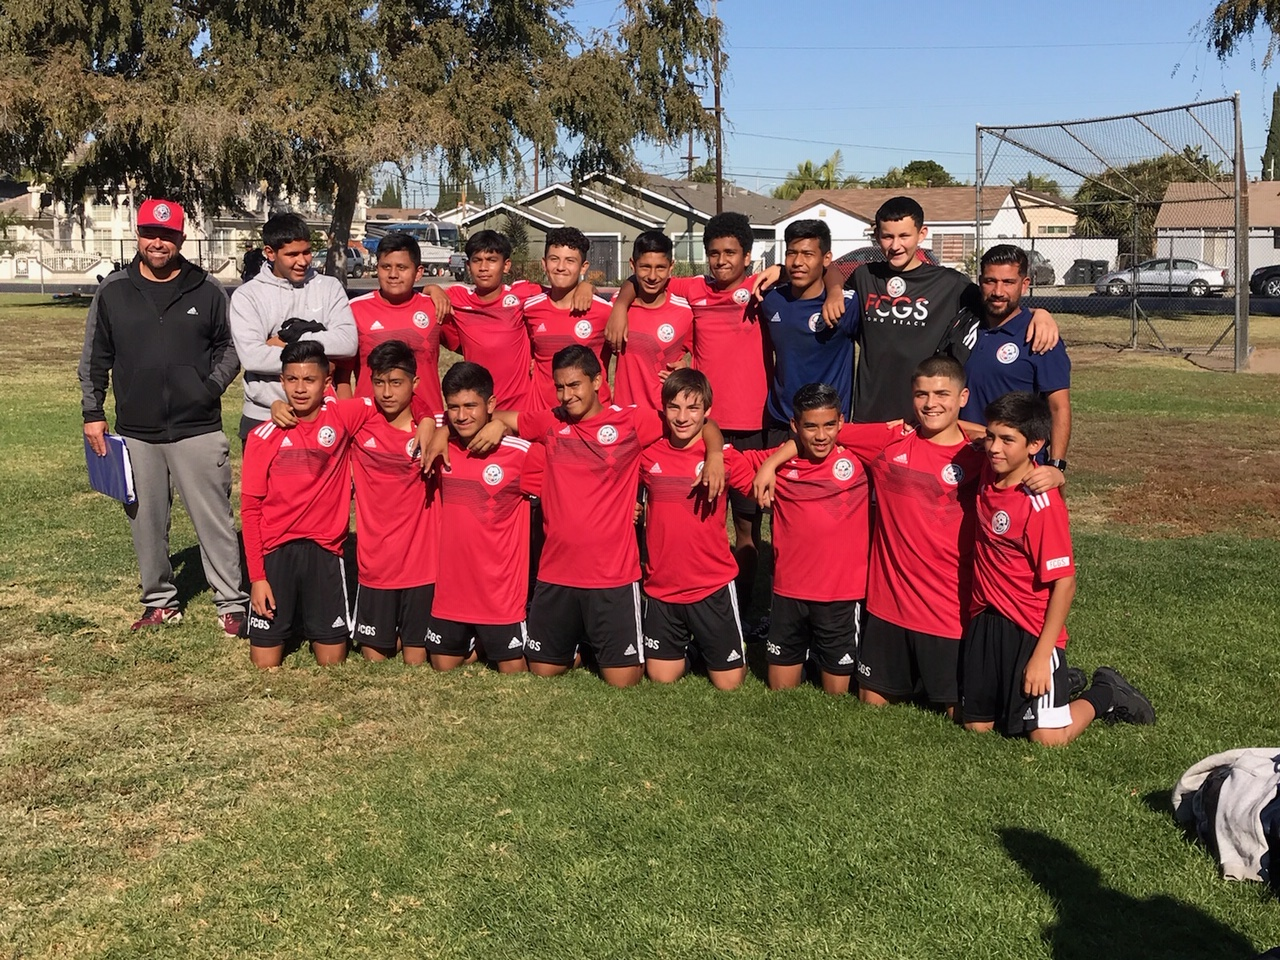 FCLB BOYS 2004 BECOME FIRST NPL WEST TEAM